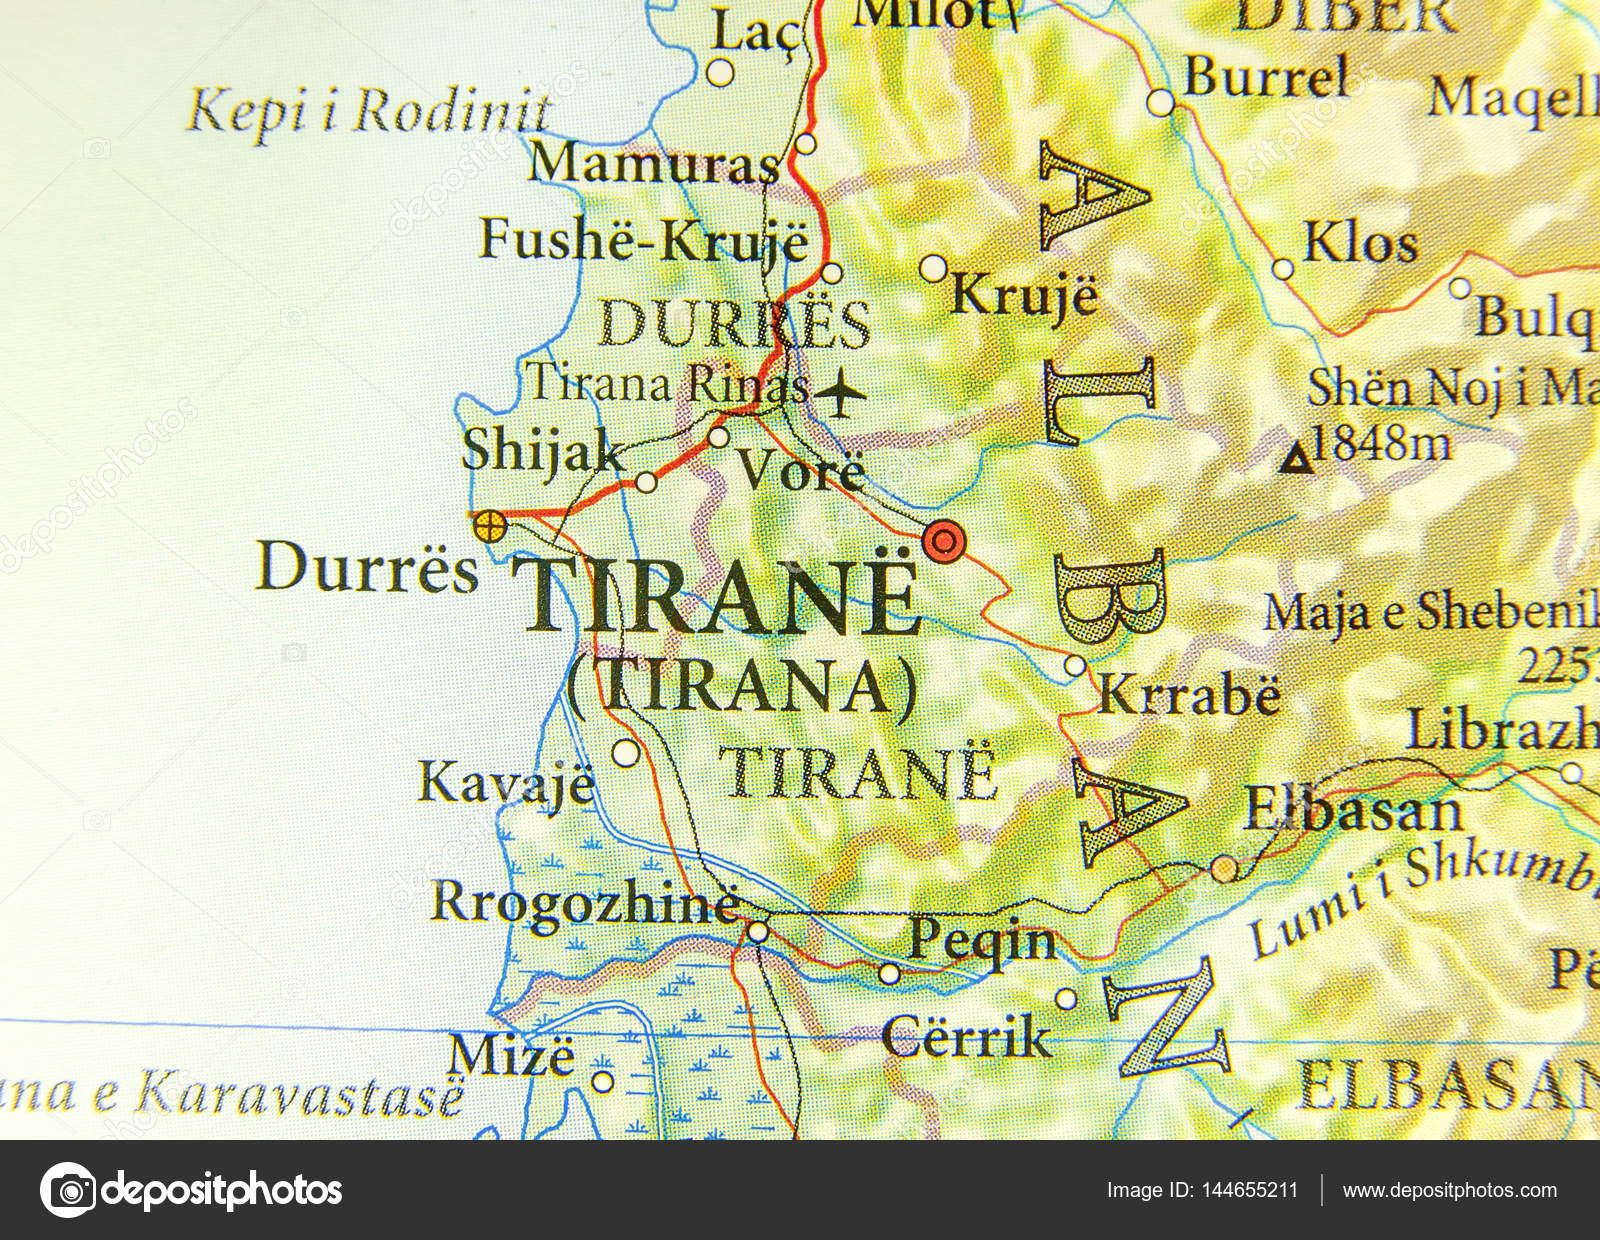 Albania Cartina Stradale.Geographic Map Of European Country Albania With Tirana City Stock Photo Image By C Bennian 144655211